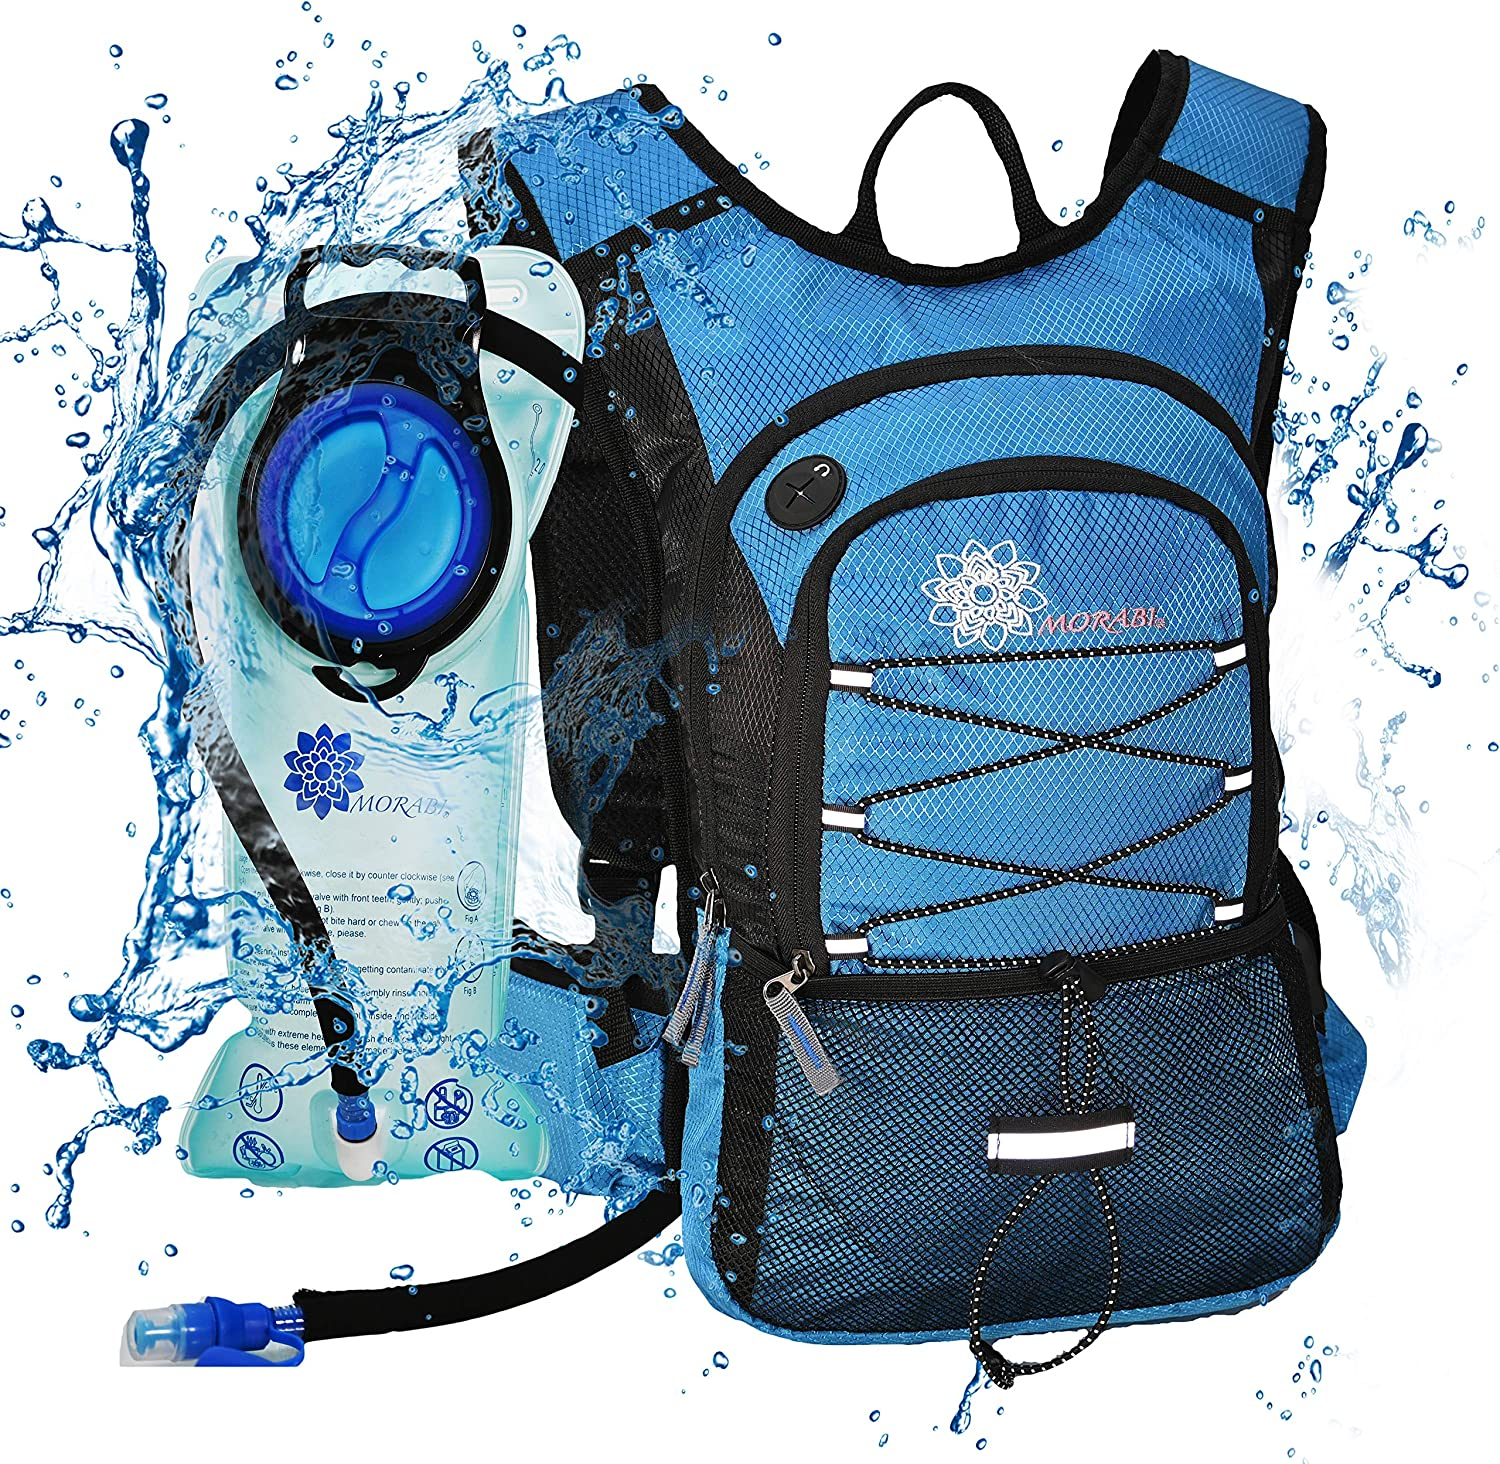 MORABI Insulated Hydration Backpack with Blad Complete Free Shipping Water BPA 2L Free Max 82% OFF